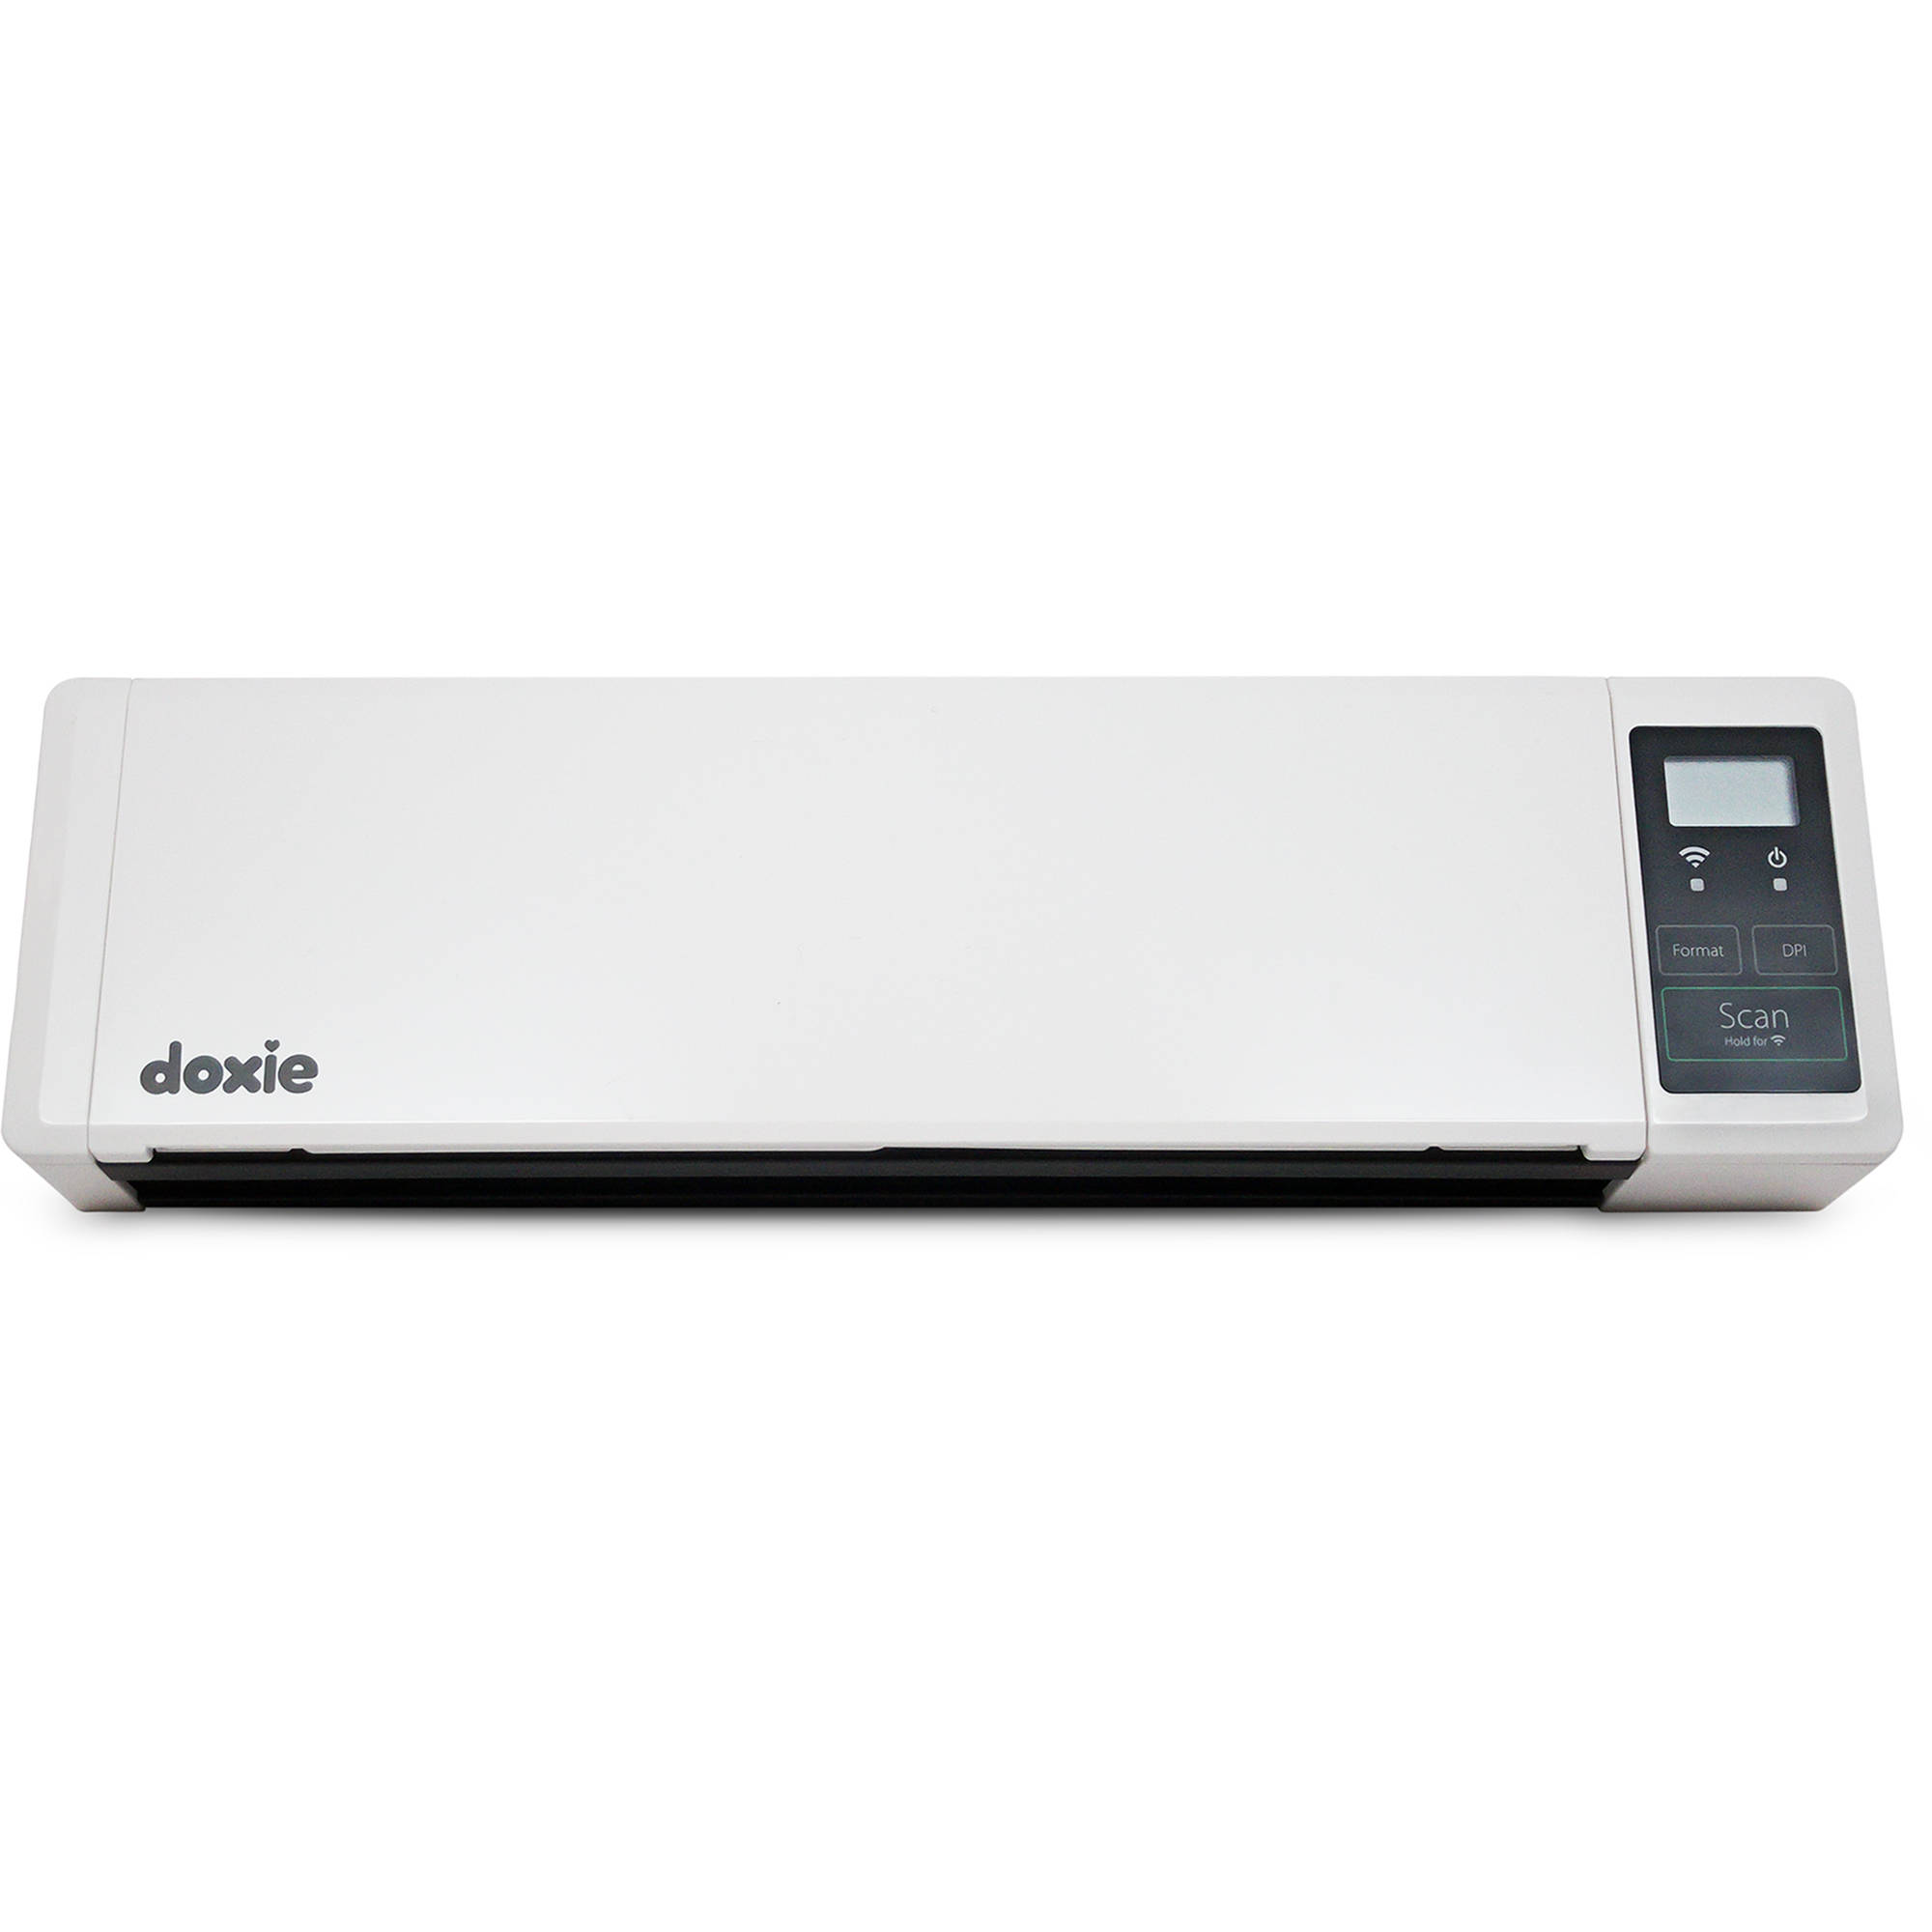 Portable business card scanners bh photo video doxie q wireless rechargeable document scanner reheart Gallery